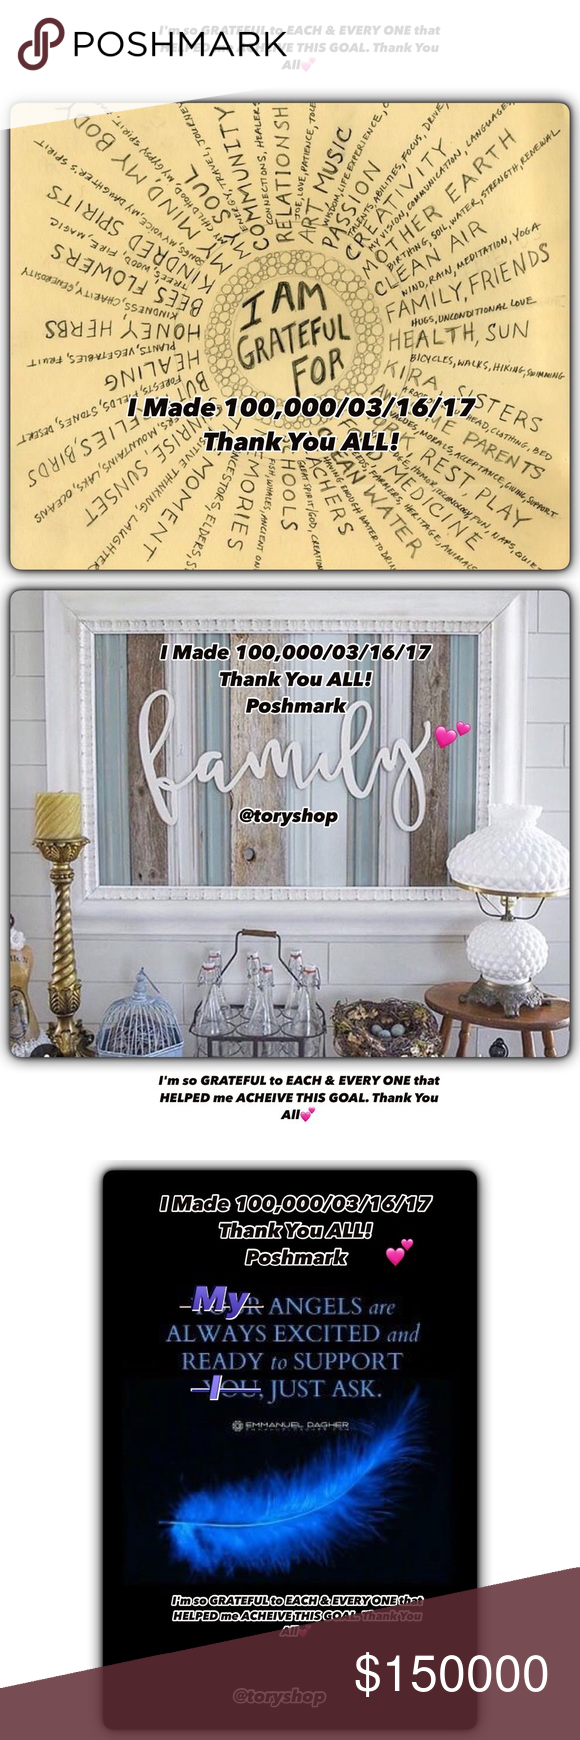 💕I would like to say Thank You from my heart❤️ ! 💕Thank You so much, each of you that liked/shared/& then followed me! You each helped me reach a goal that actually brings me to tears, of appreciation & joy! Because without all of you! I could't have accomplished this landmark number of folliwers! This last year & this year have held some events that set me back, & through the LOVE & ENCOURAGEMENT of my Poshmark Family, I continued to go forward, & reach this very important goal! Now let's…